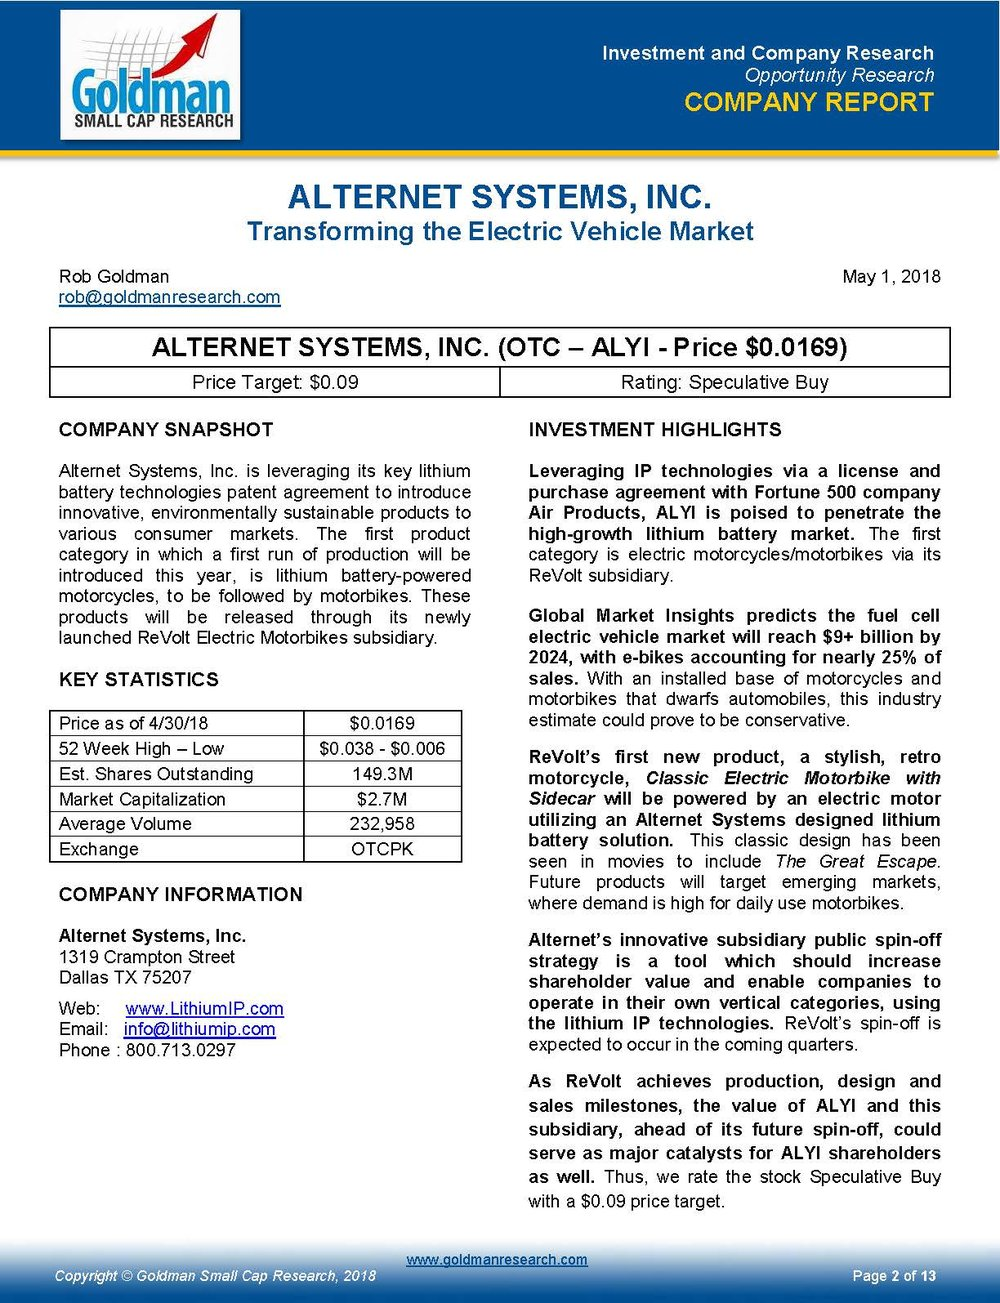 ALYI 5.1.18 Analyst Report_Page_02.jpg